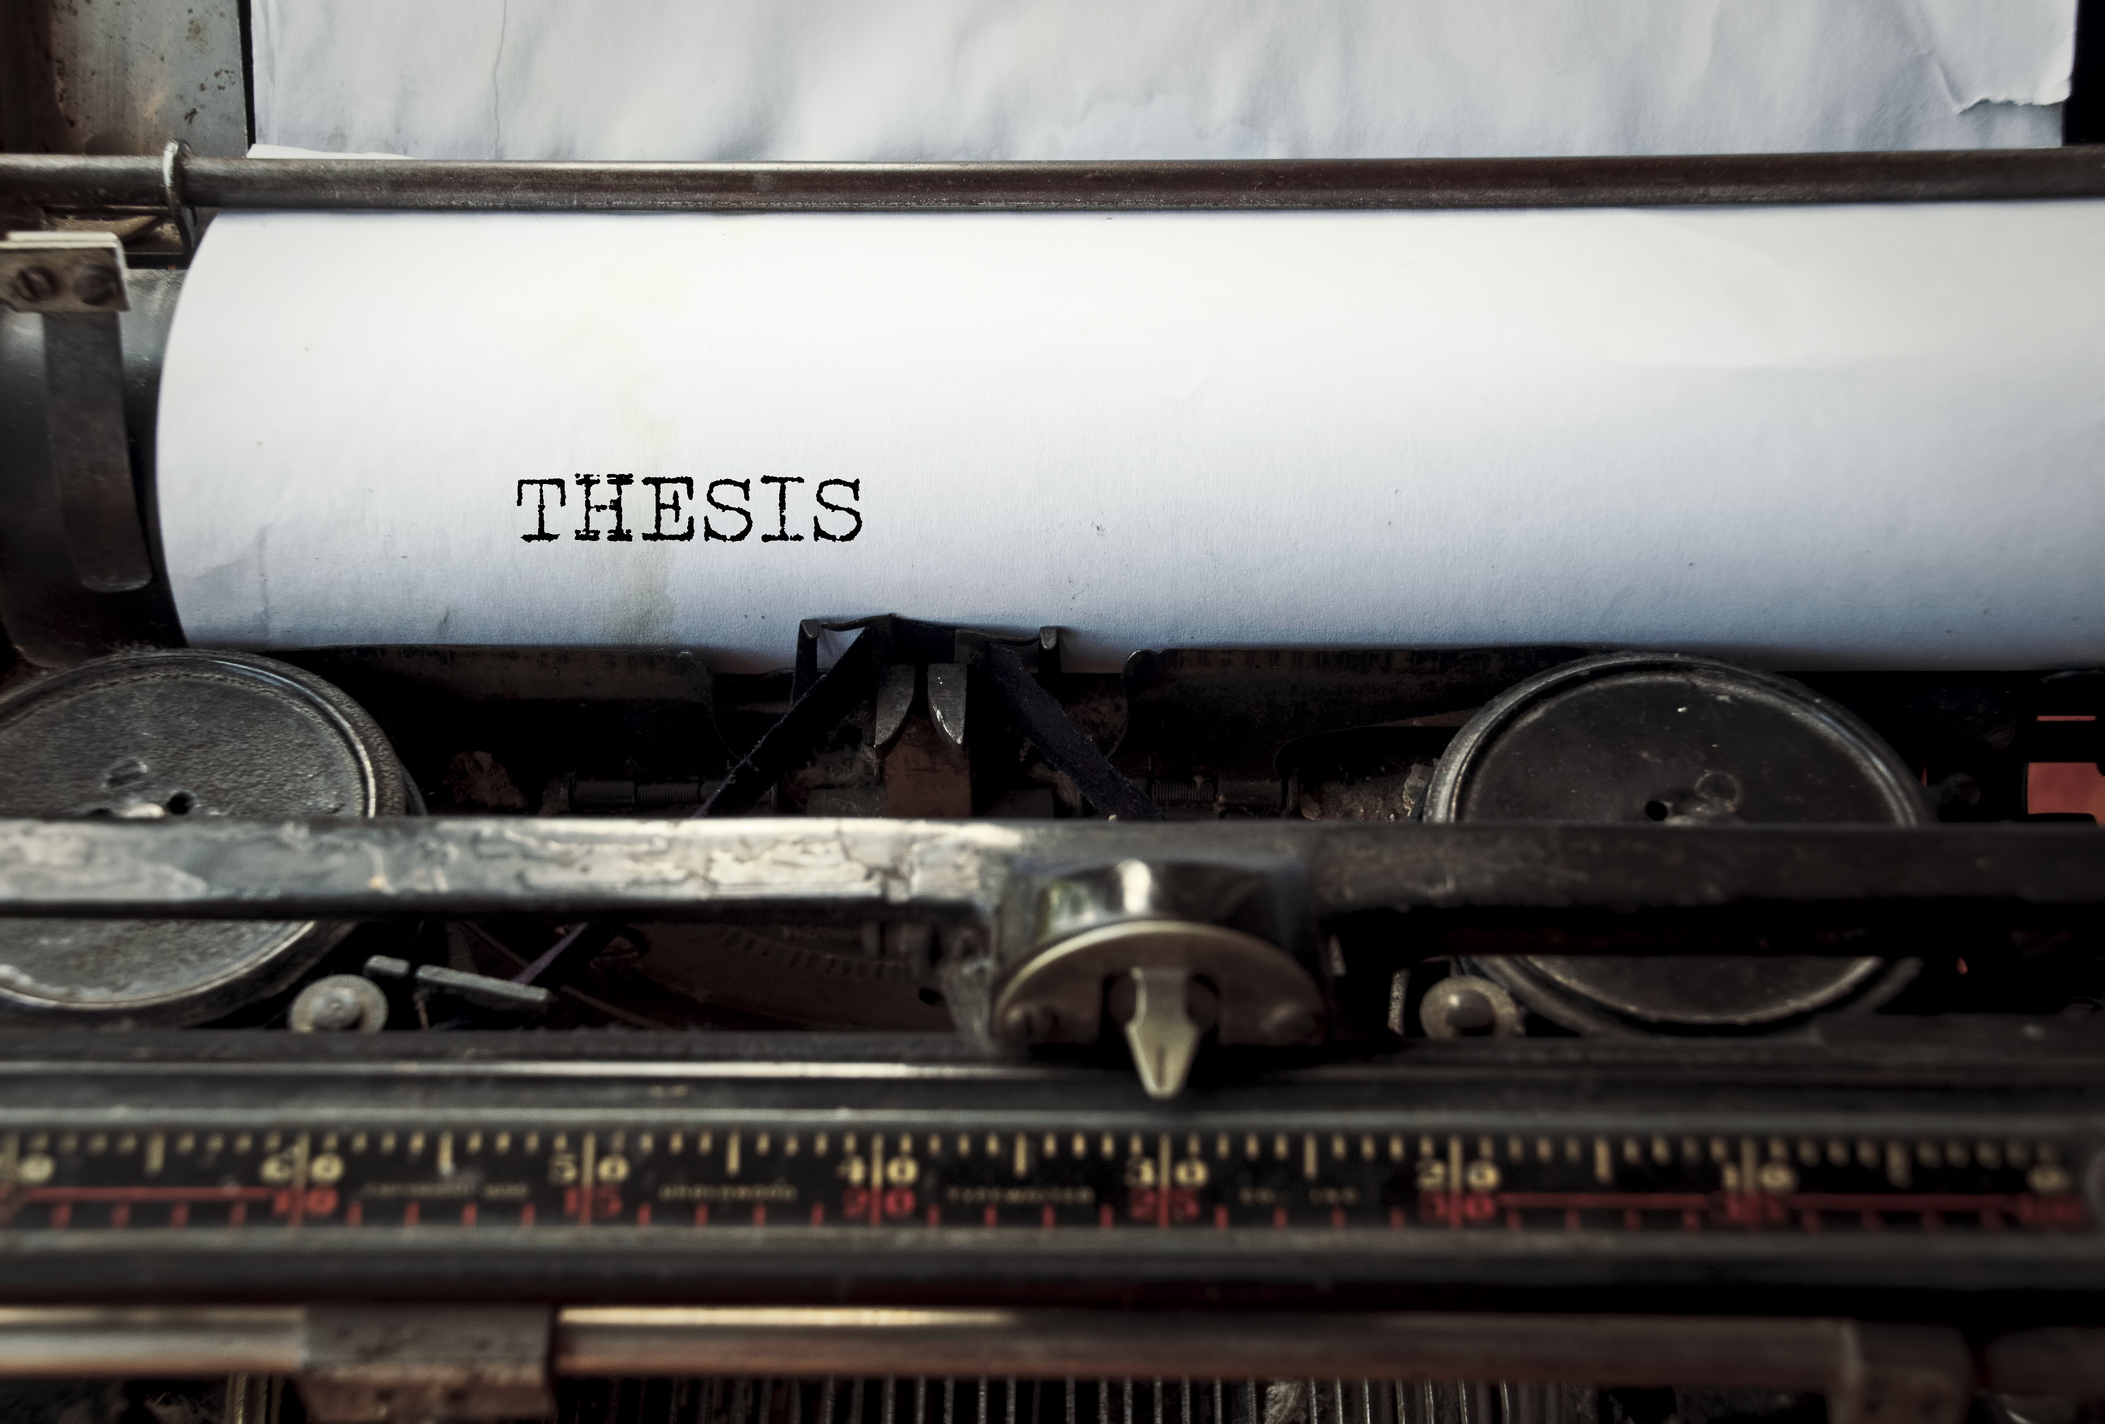 phd thesis margins Fonts, margins, chapter headings, citations, and references must all match the formatting and placement used within the rest of the thesis or dissertation.